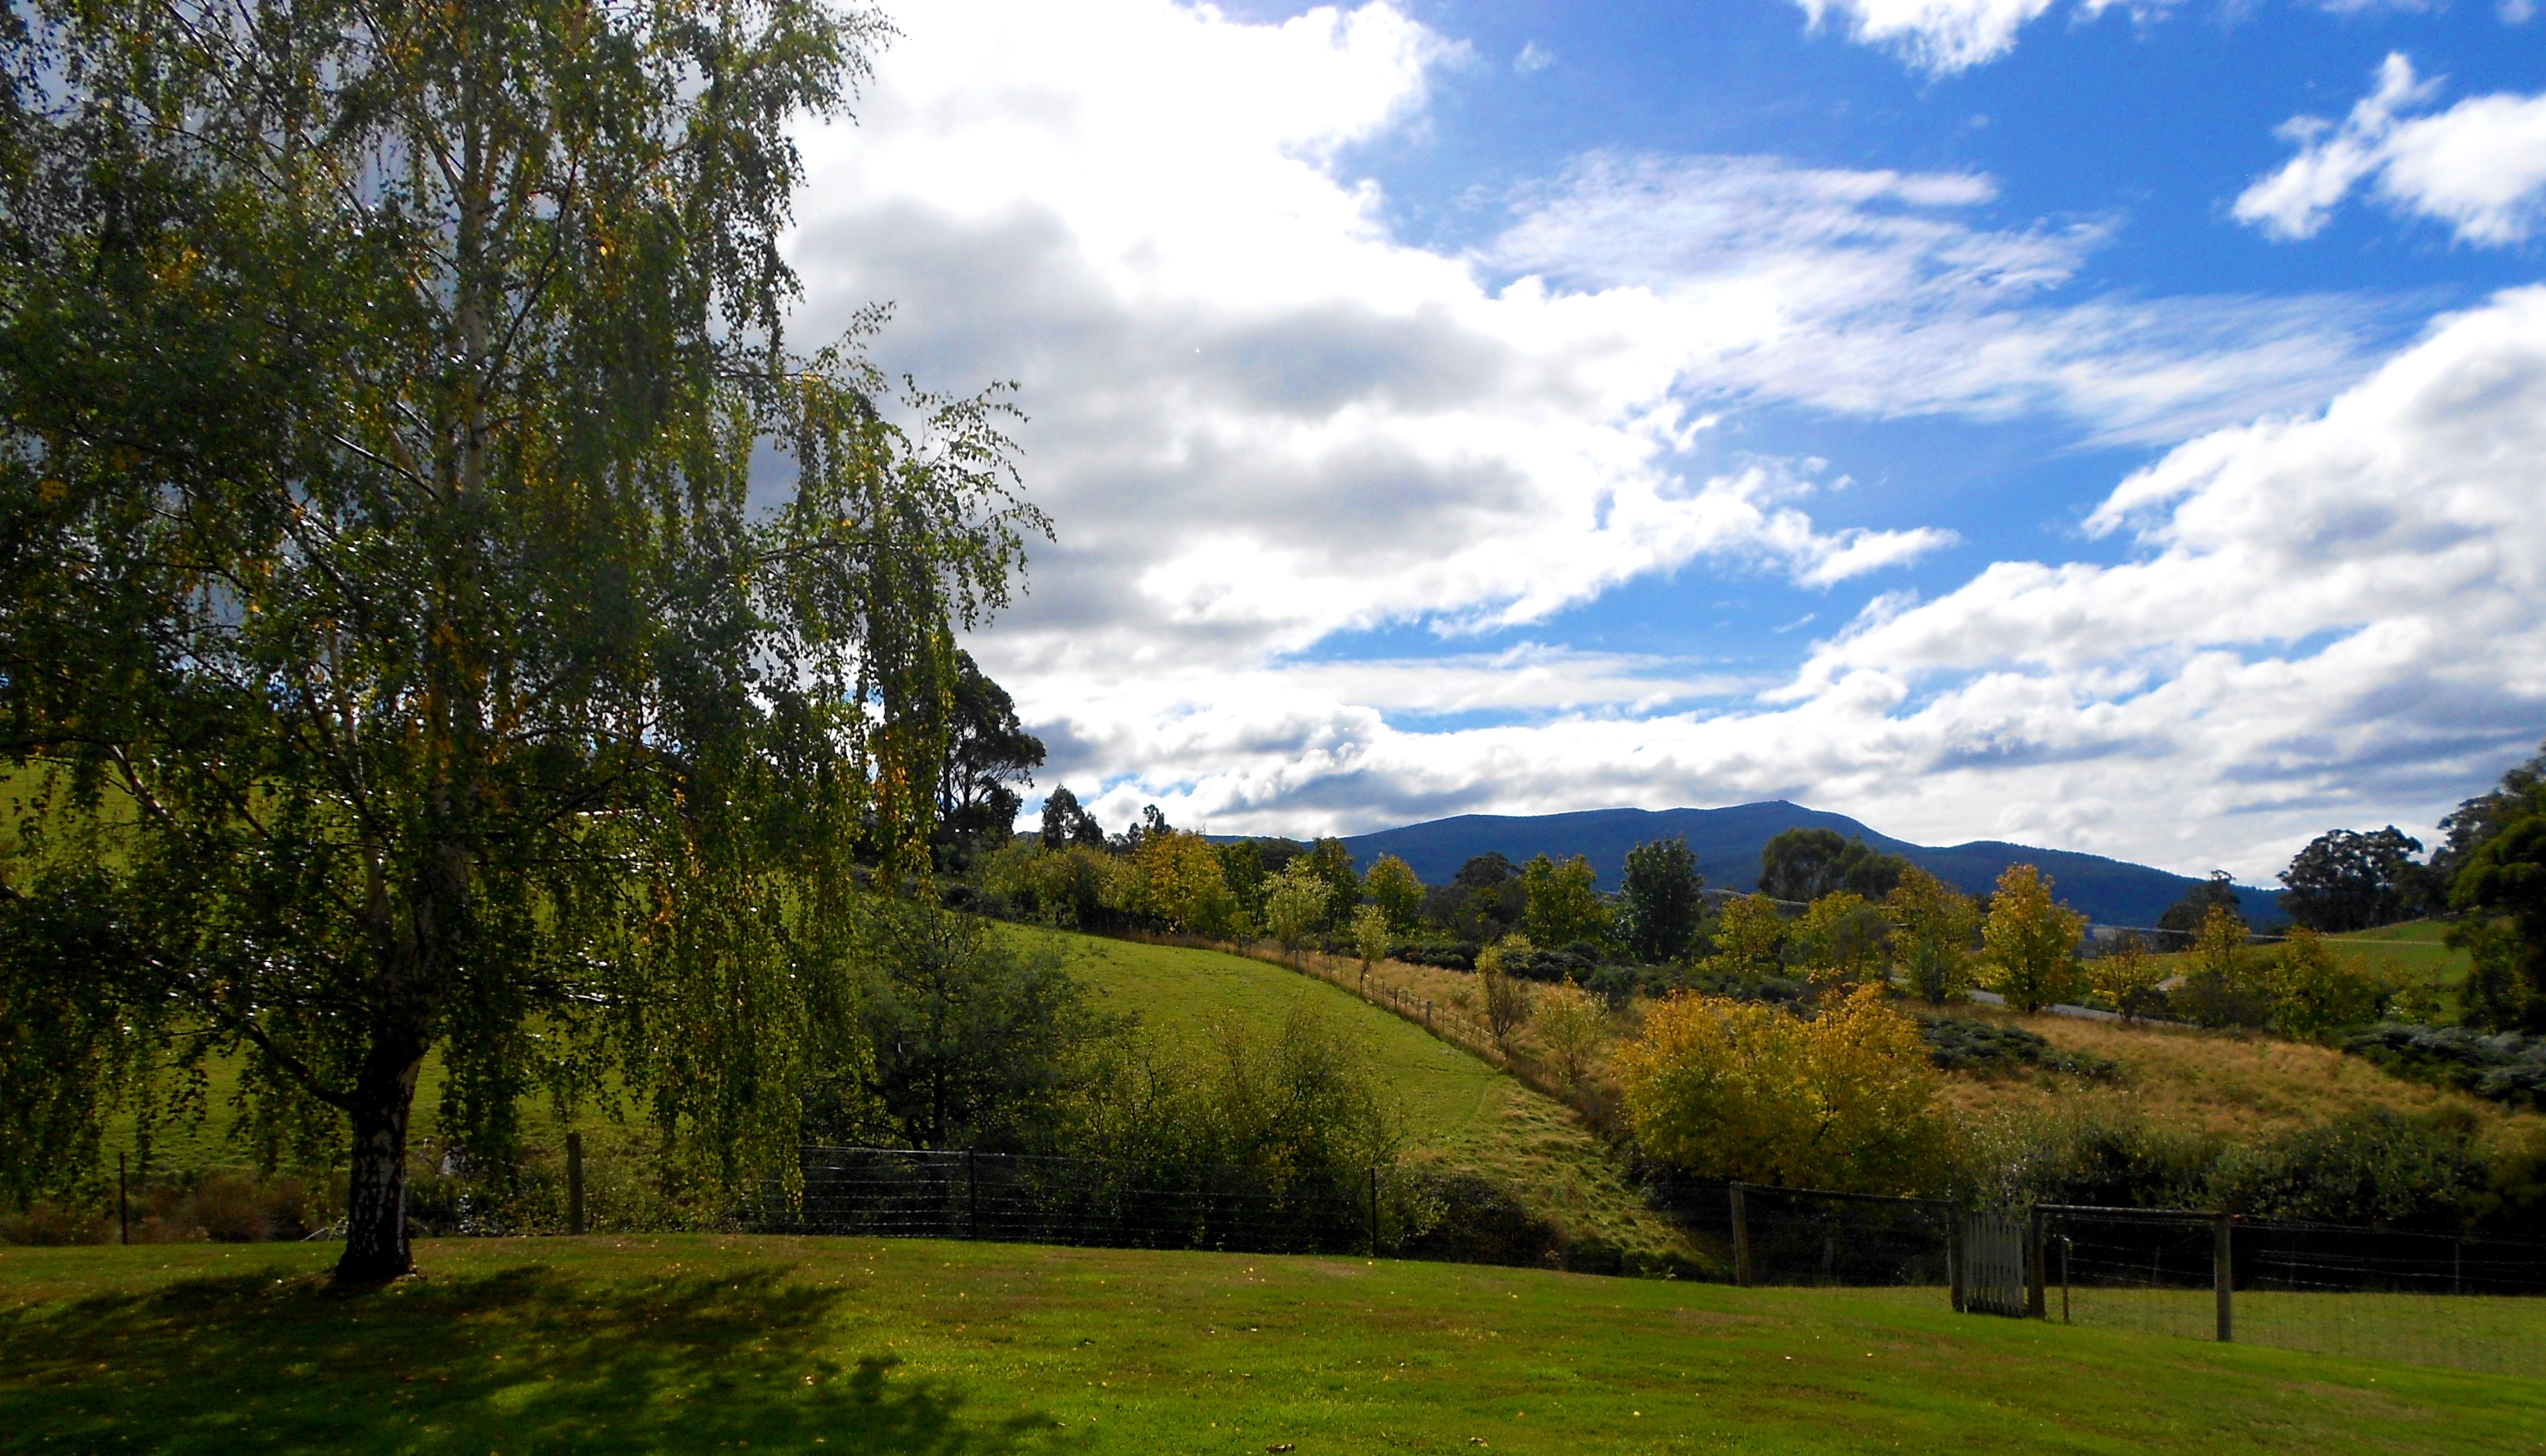 Summer view of Mt Wellington from Birchview Tasmania's front lawn